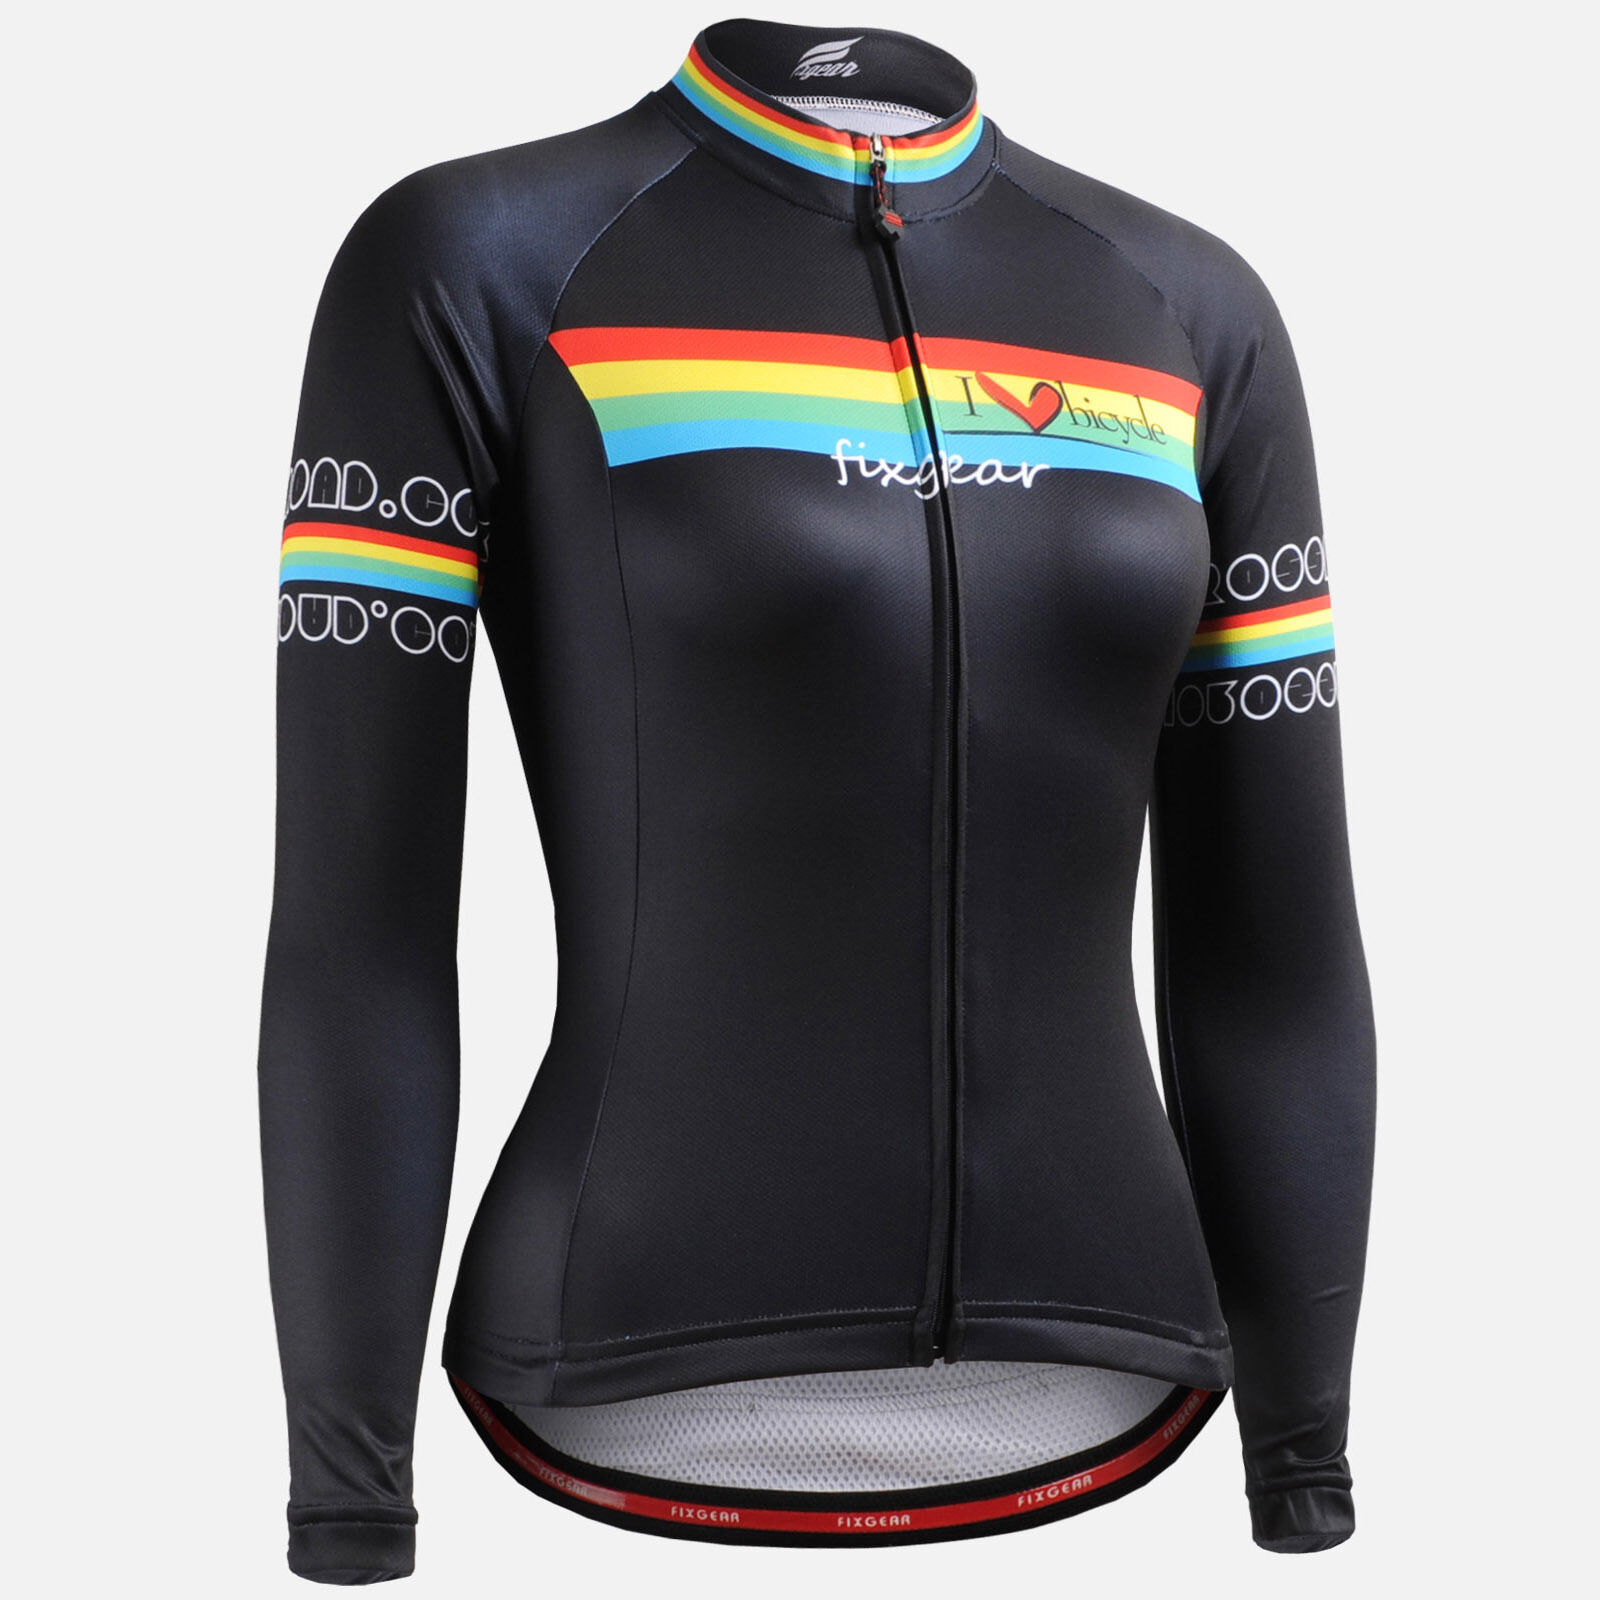 FIXGEAR Women's Cycling jersey road bike shirt bicycle wear cycle clothes W201